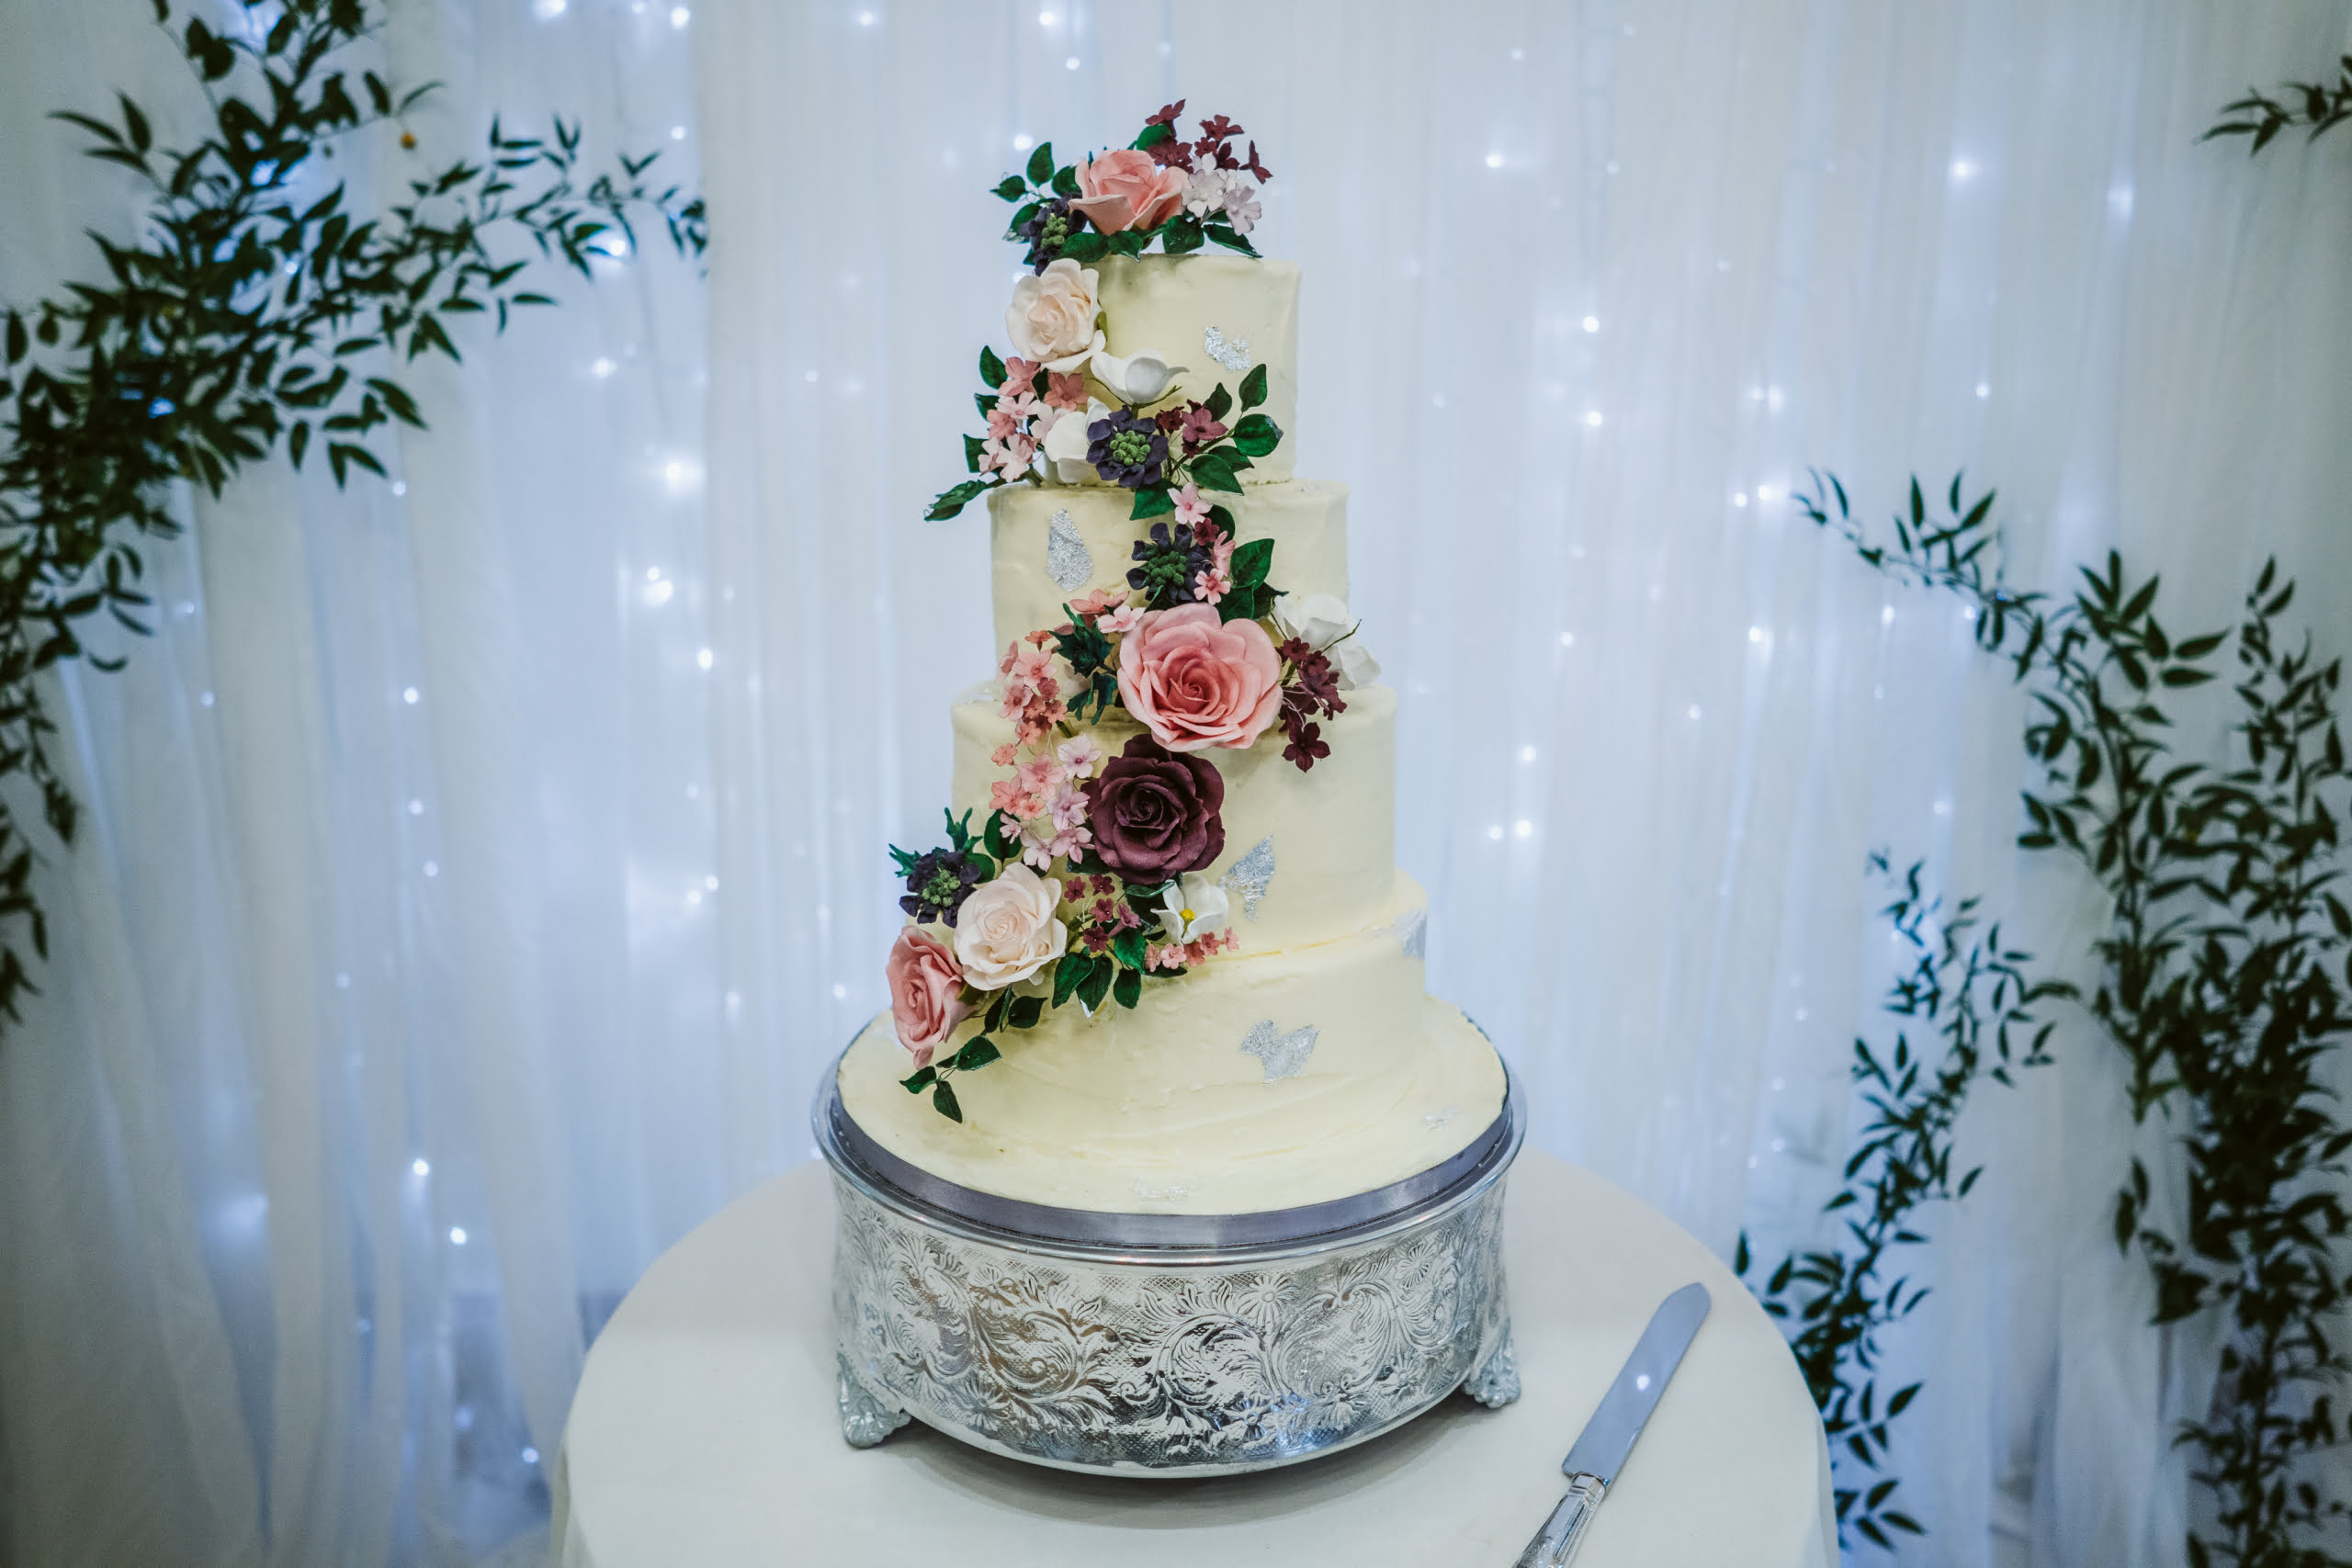 Handmade pink and burgundy sugar flowers cascade down a buttercream silk leaf 4 tier wedding cake